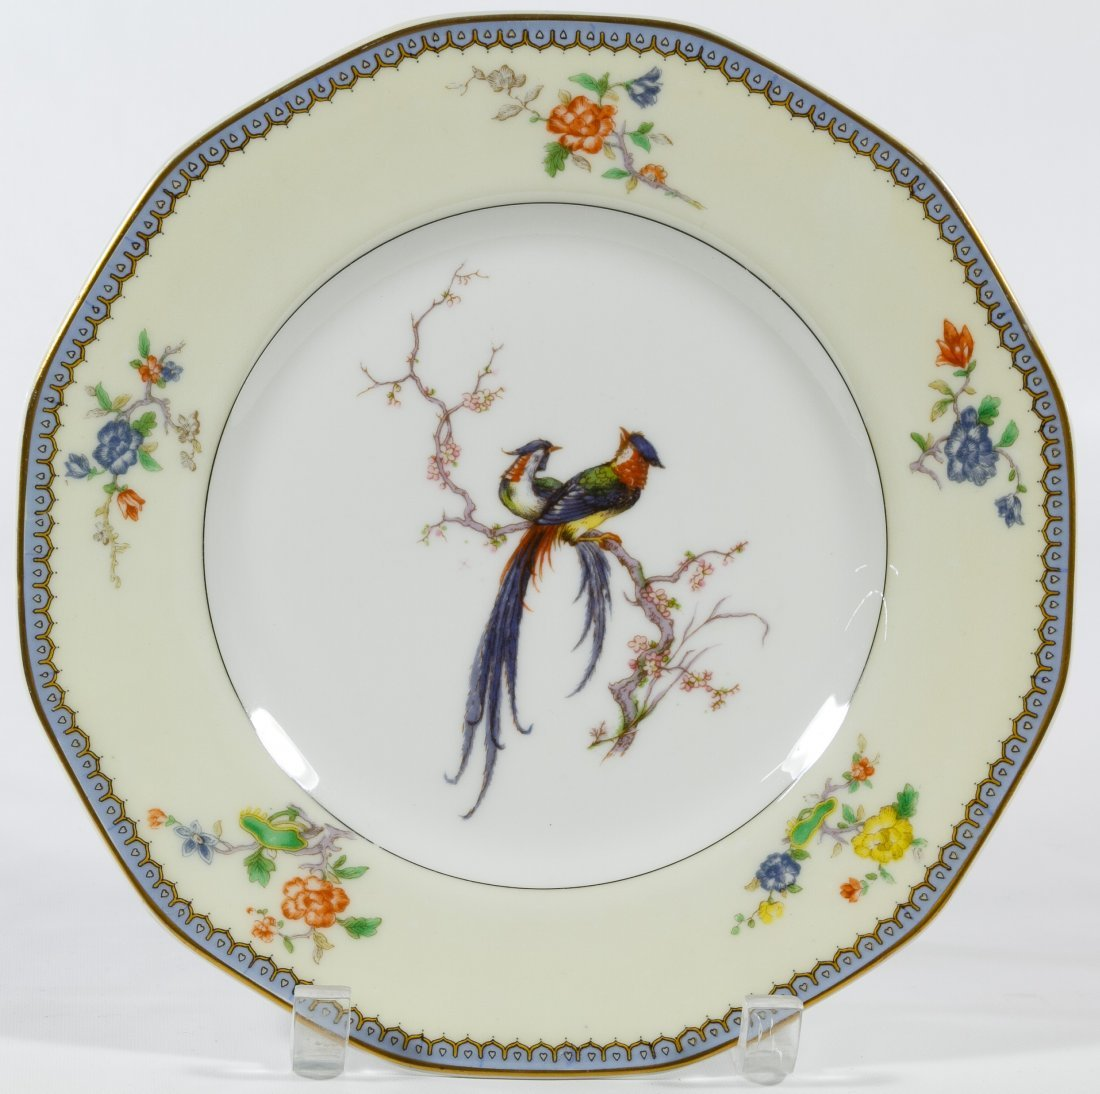 Haviland Limoges 'Chambord' China Service - 2